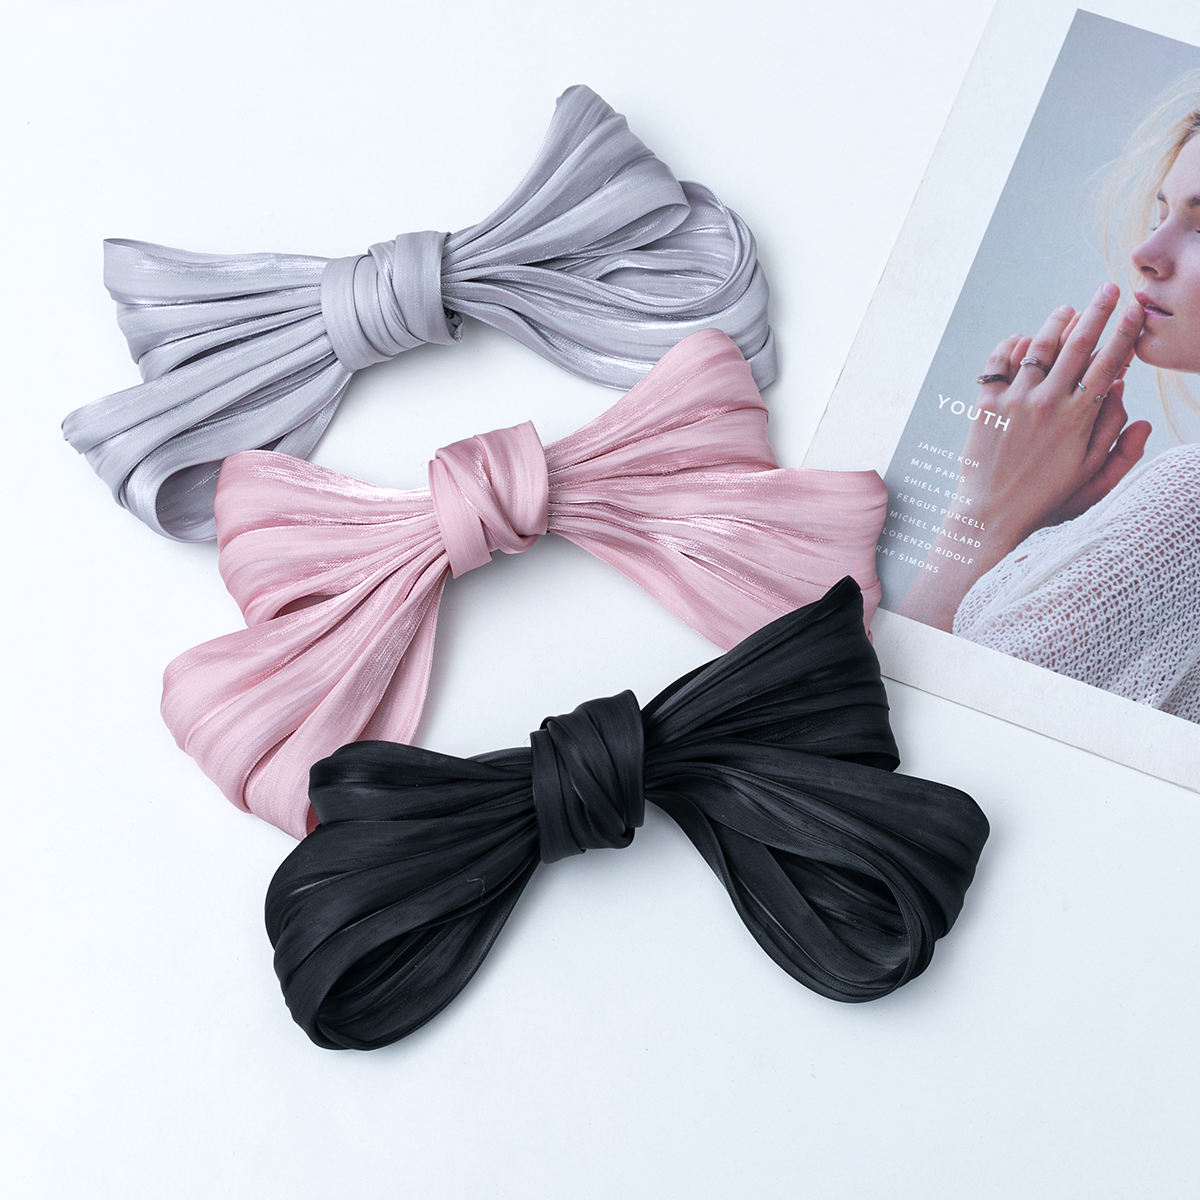 S-könig <span class=keywords><strong>Organza</strong></span> Big Colorful Bow Knot Hair Clips Shiny Fancy Luxury Hair Pins For Women Girl Spring Clip Hair Decoration Gift